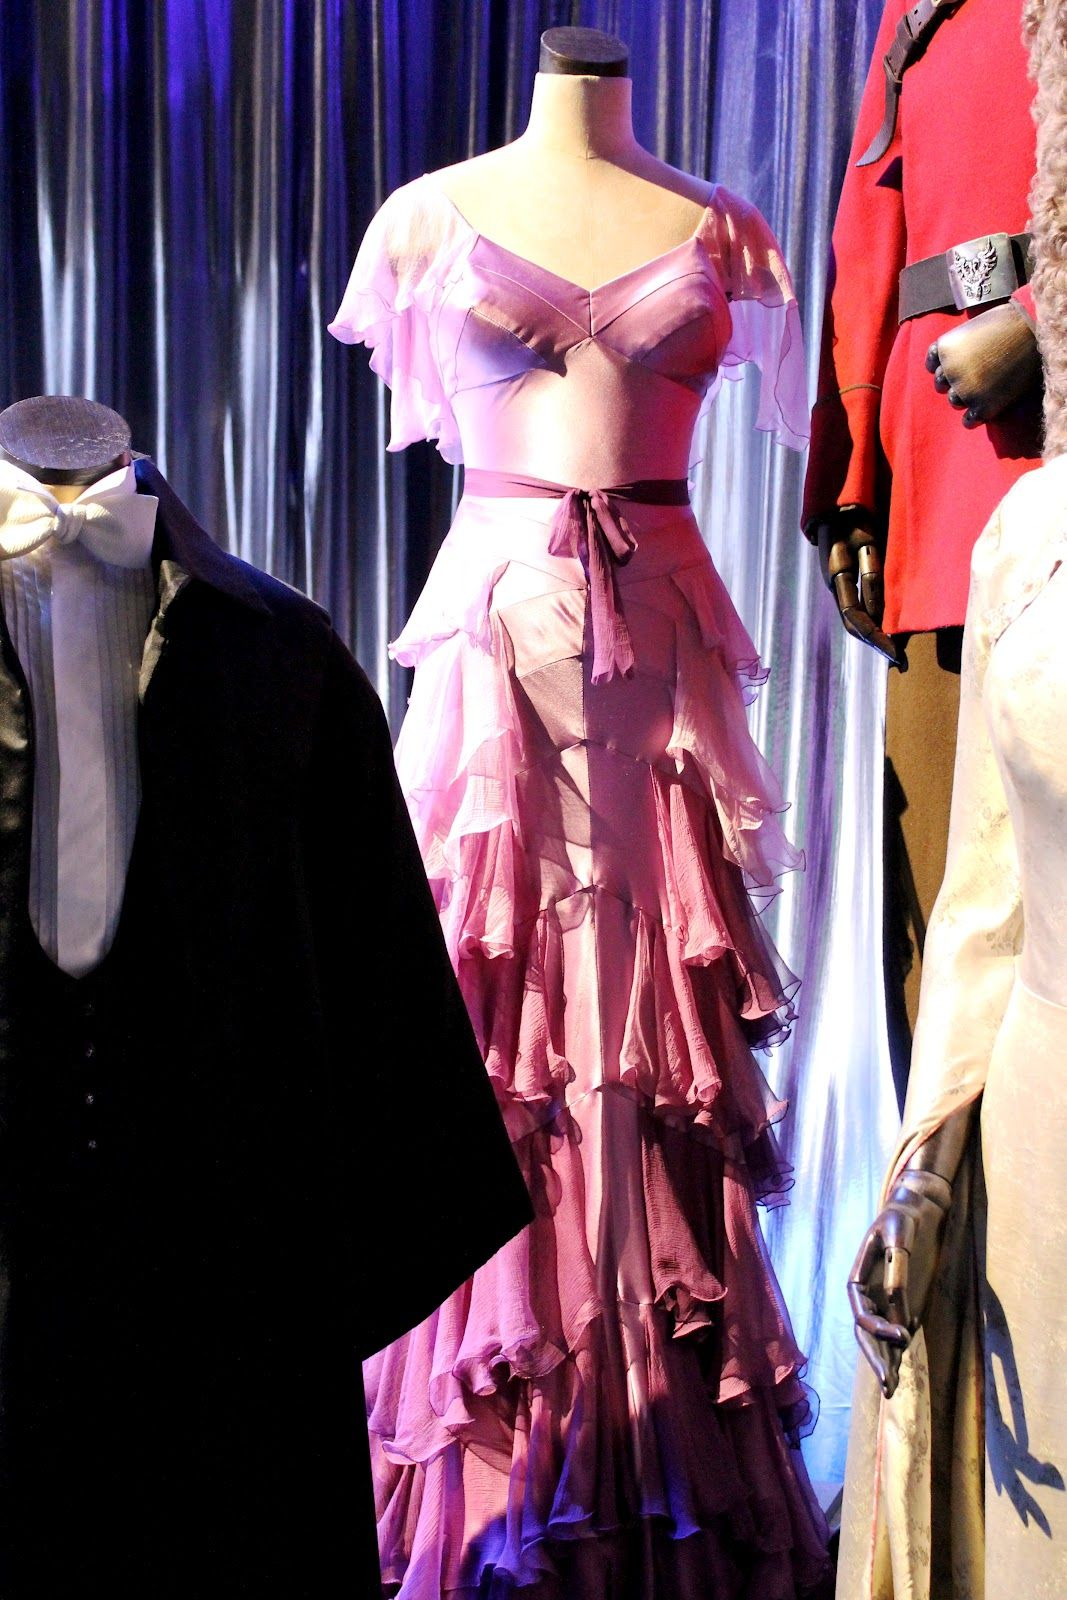 Hermione Yule Ball | Costumes | Pinterest | Yule ball, Hermione and Yule